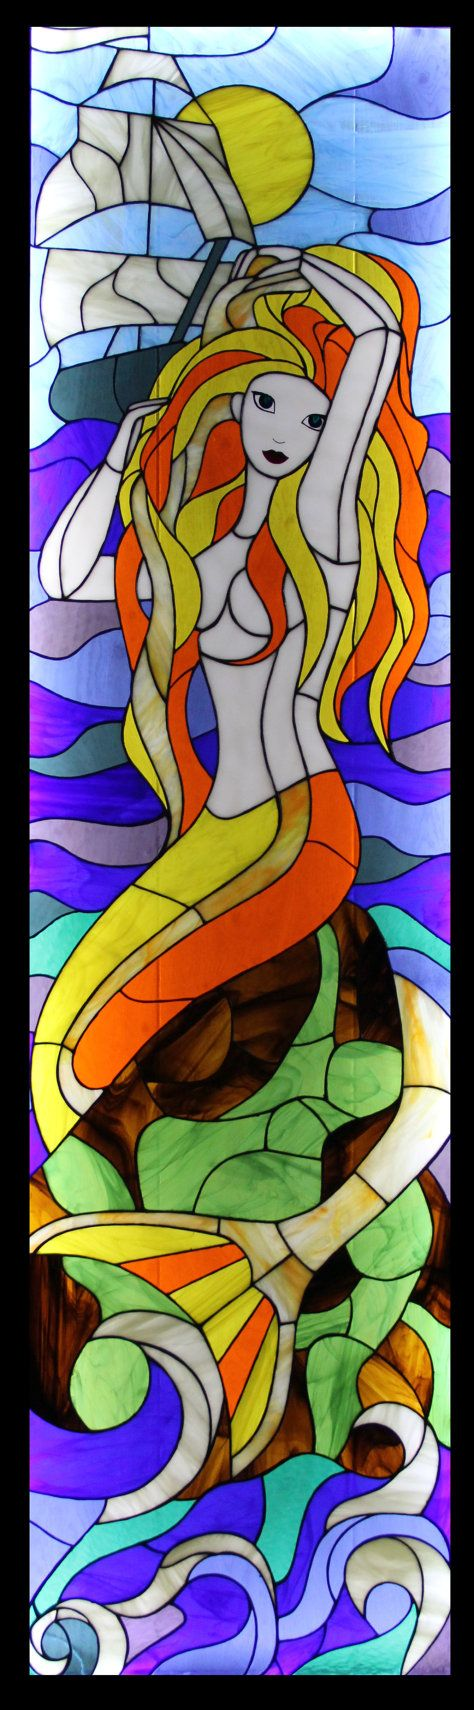 "Mermaid"", based on the stained glass window film Harry Potter"